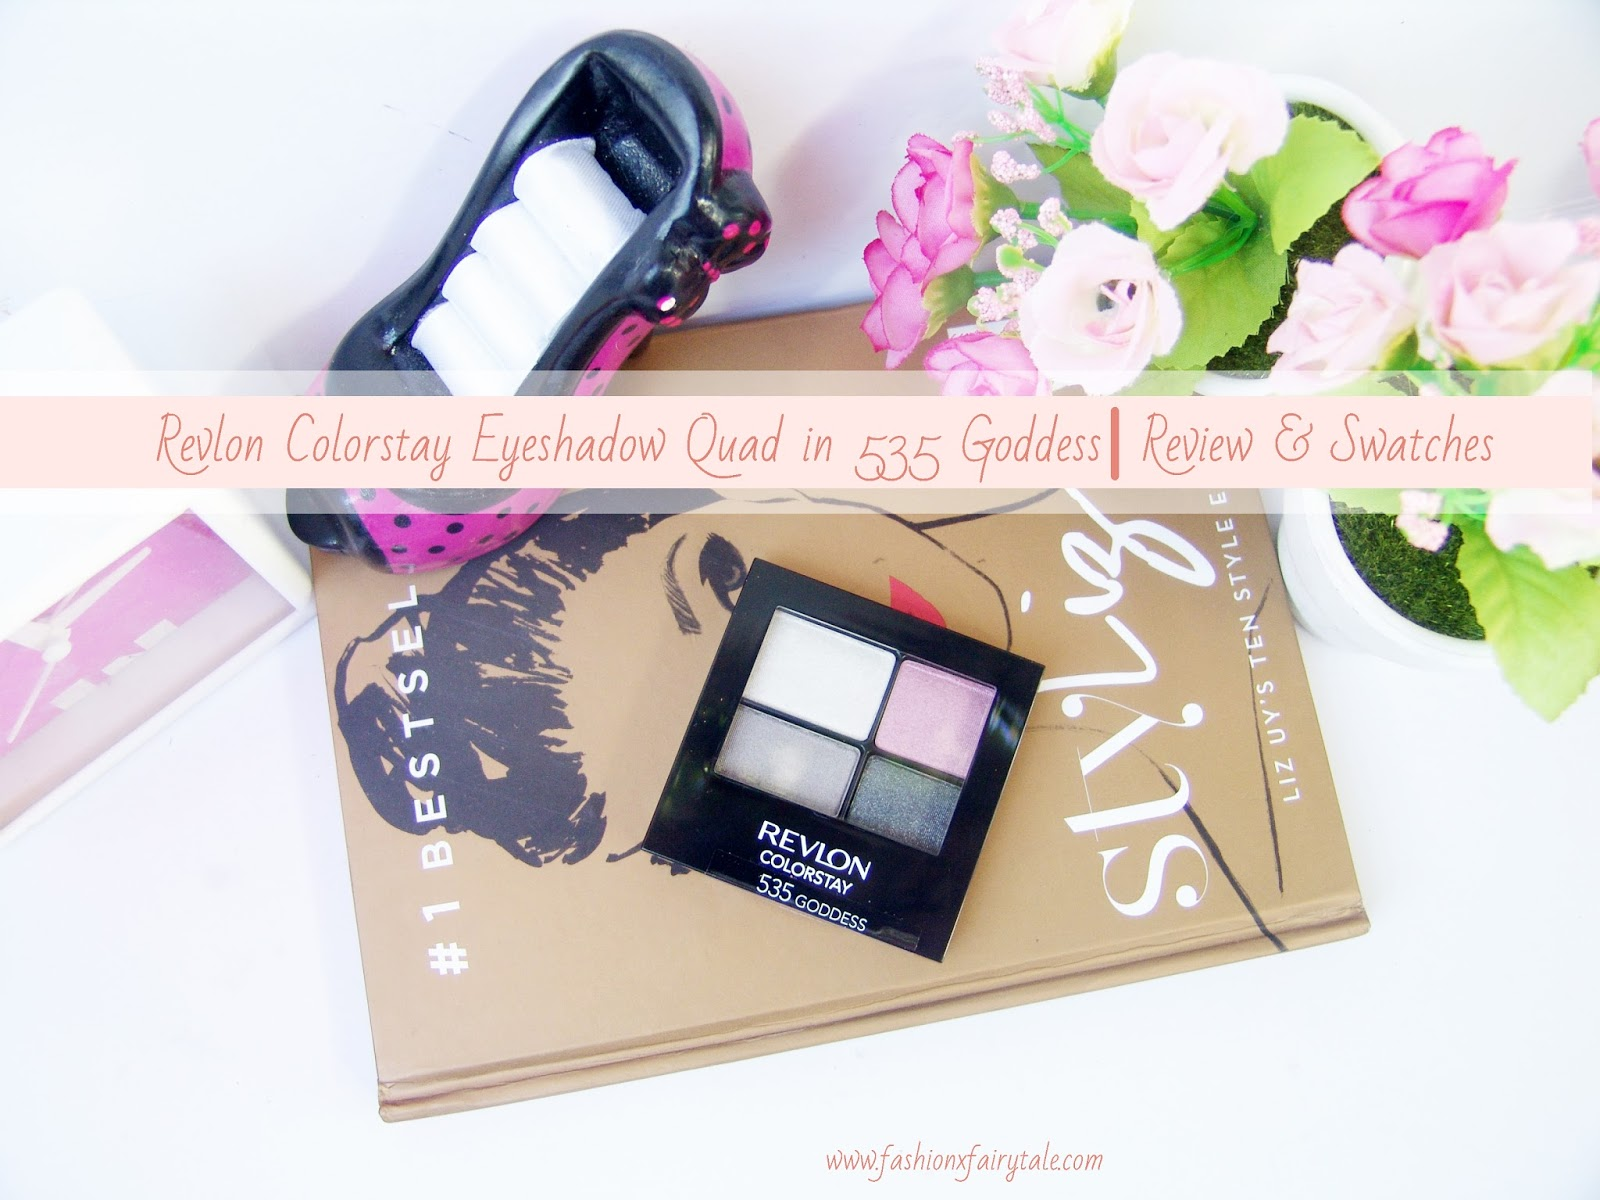 Revlon Colorstay Eyeshadow Quad in 435 Goddess | Review & Swarches